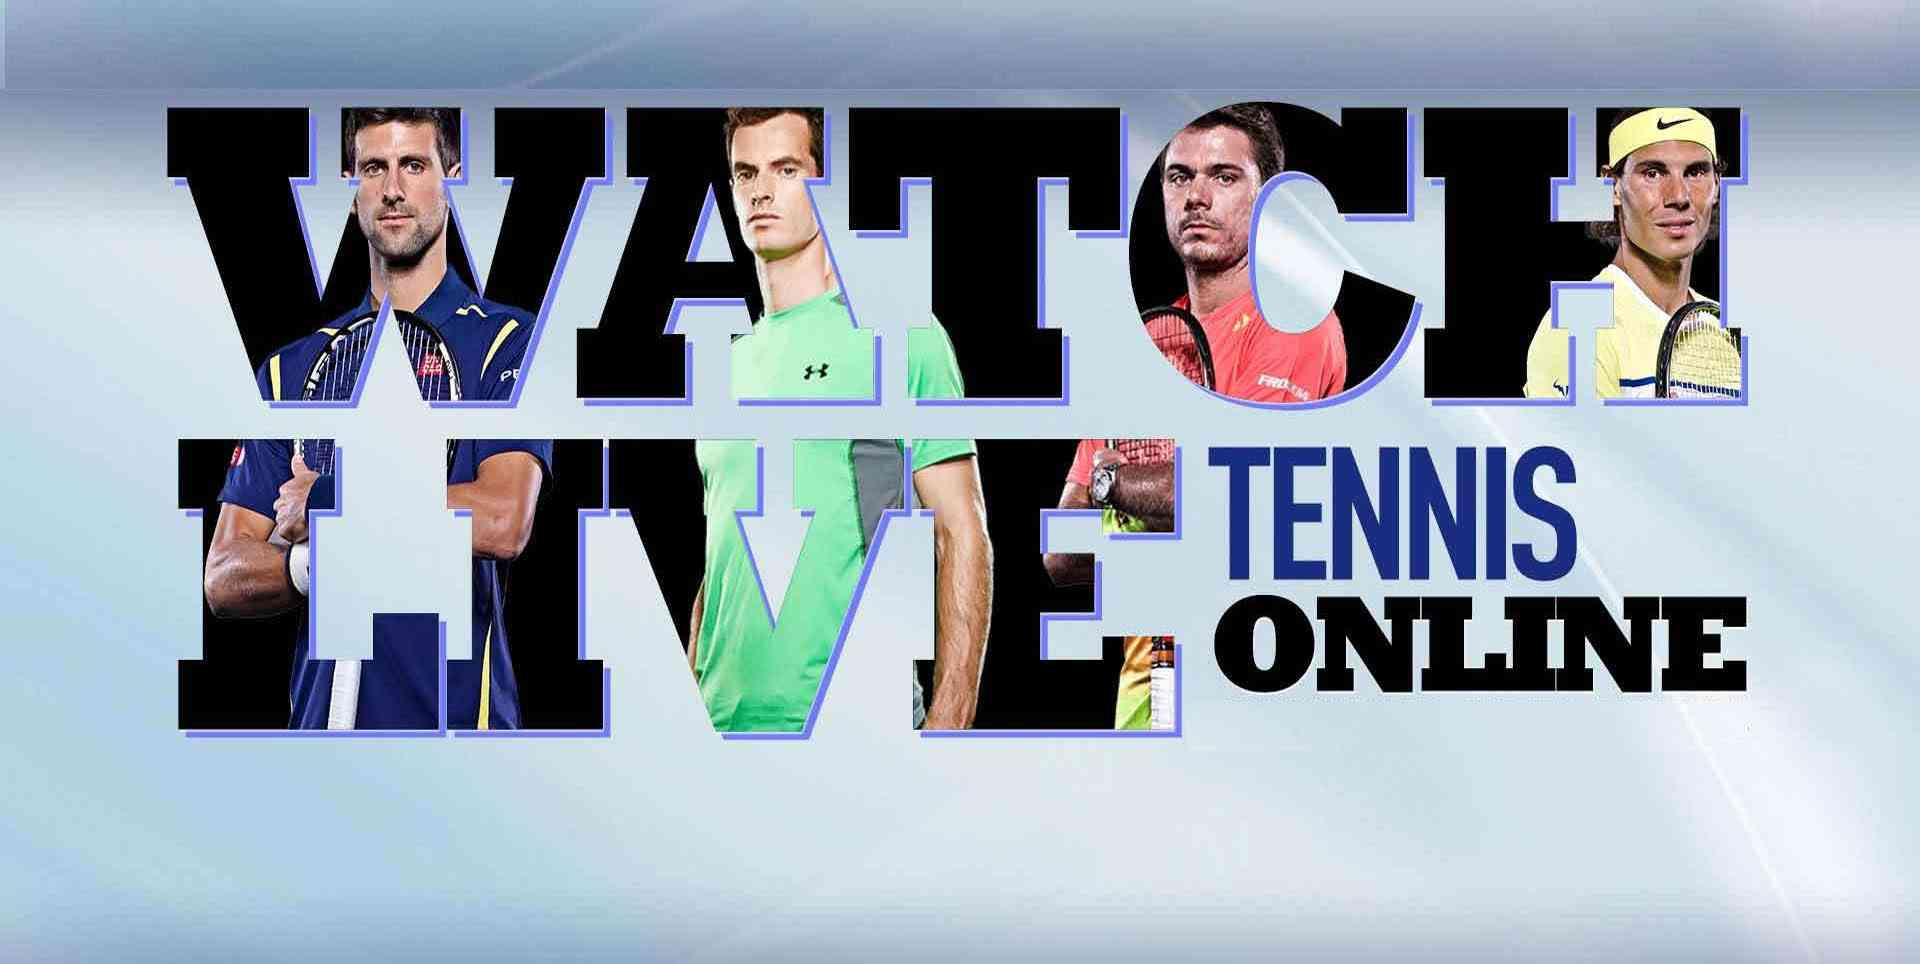 Watch 2nd Round M. Cilic vs A. Haider-Maurer Online